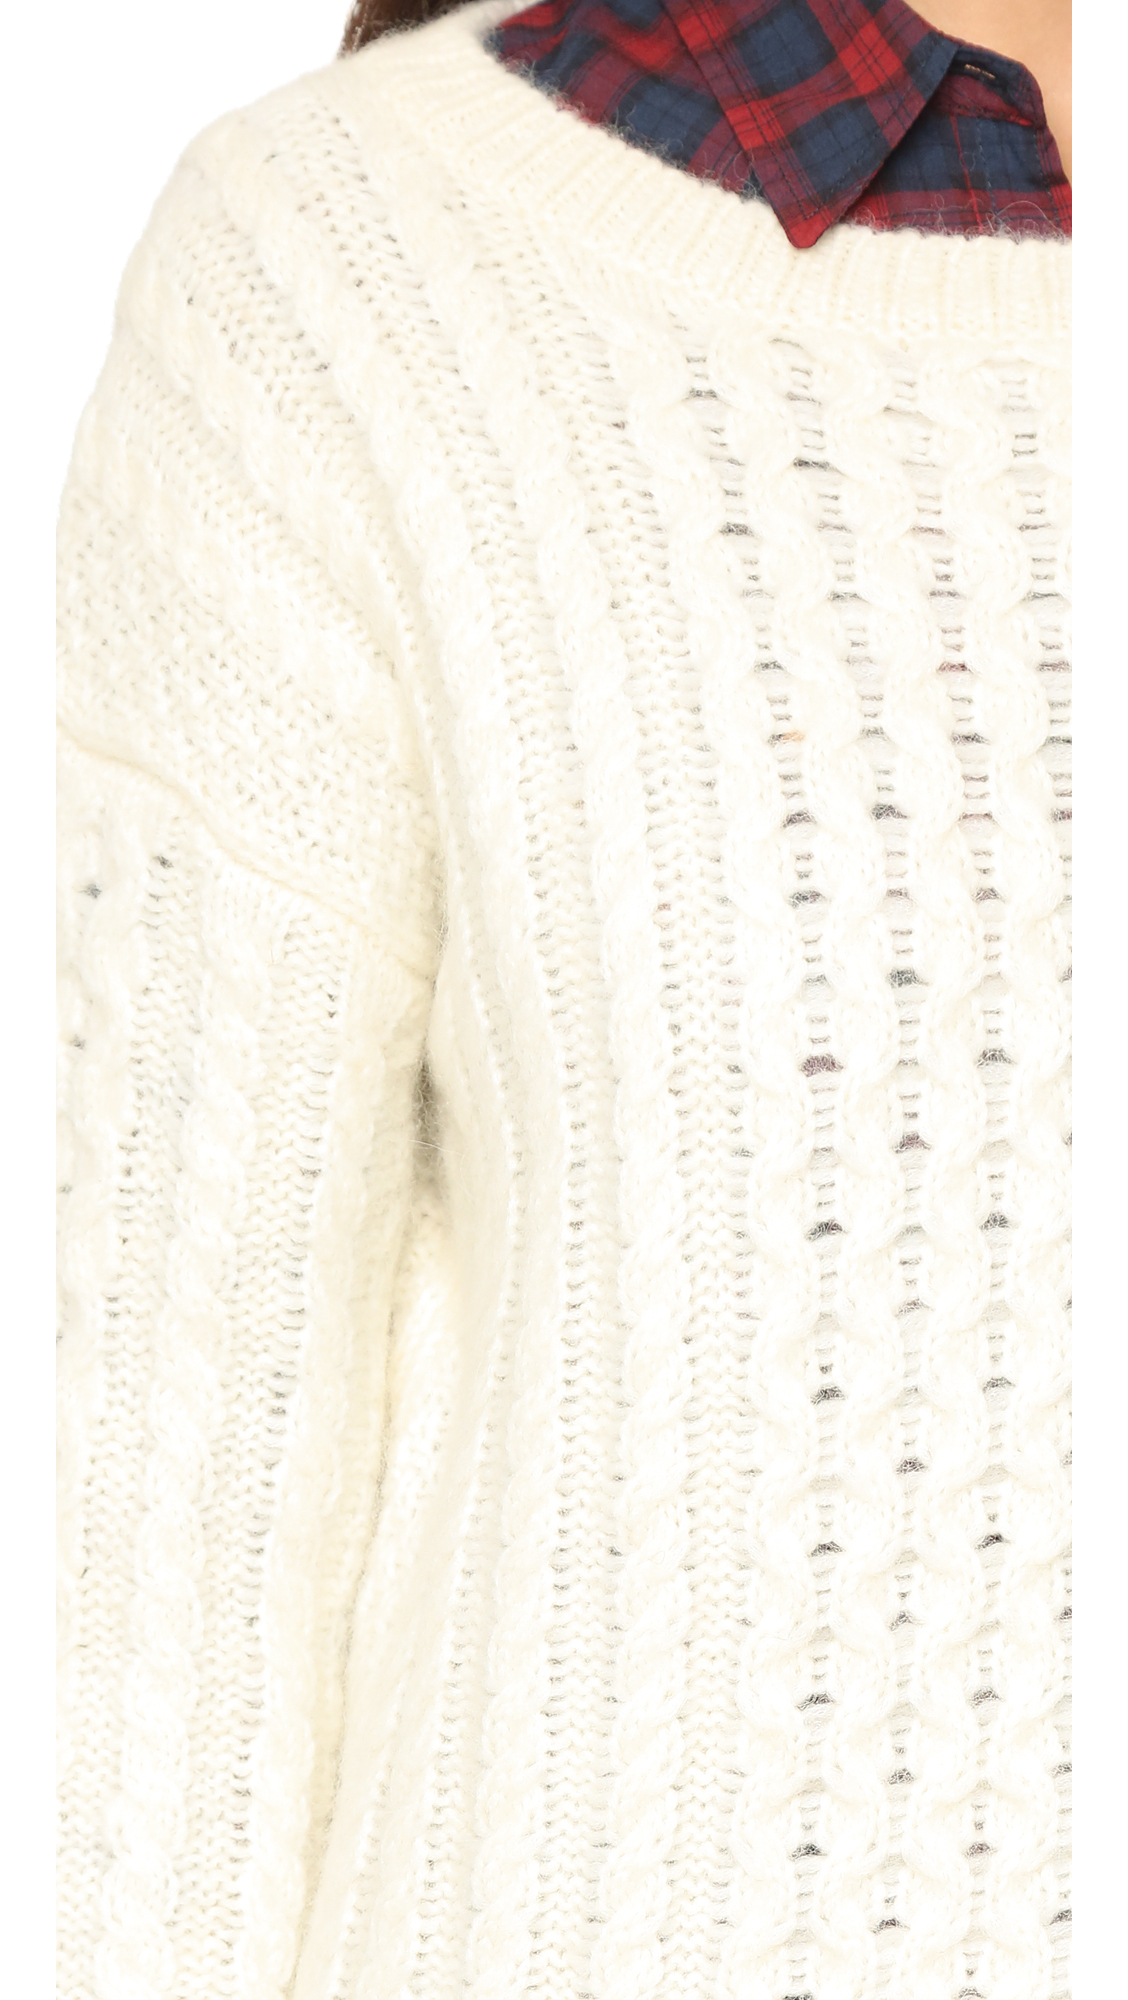 Nili lotan Kissing Cable Sweater - Soft White in White | Lyst